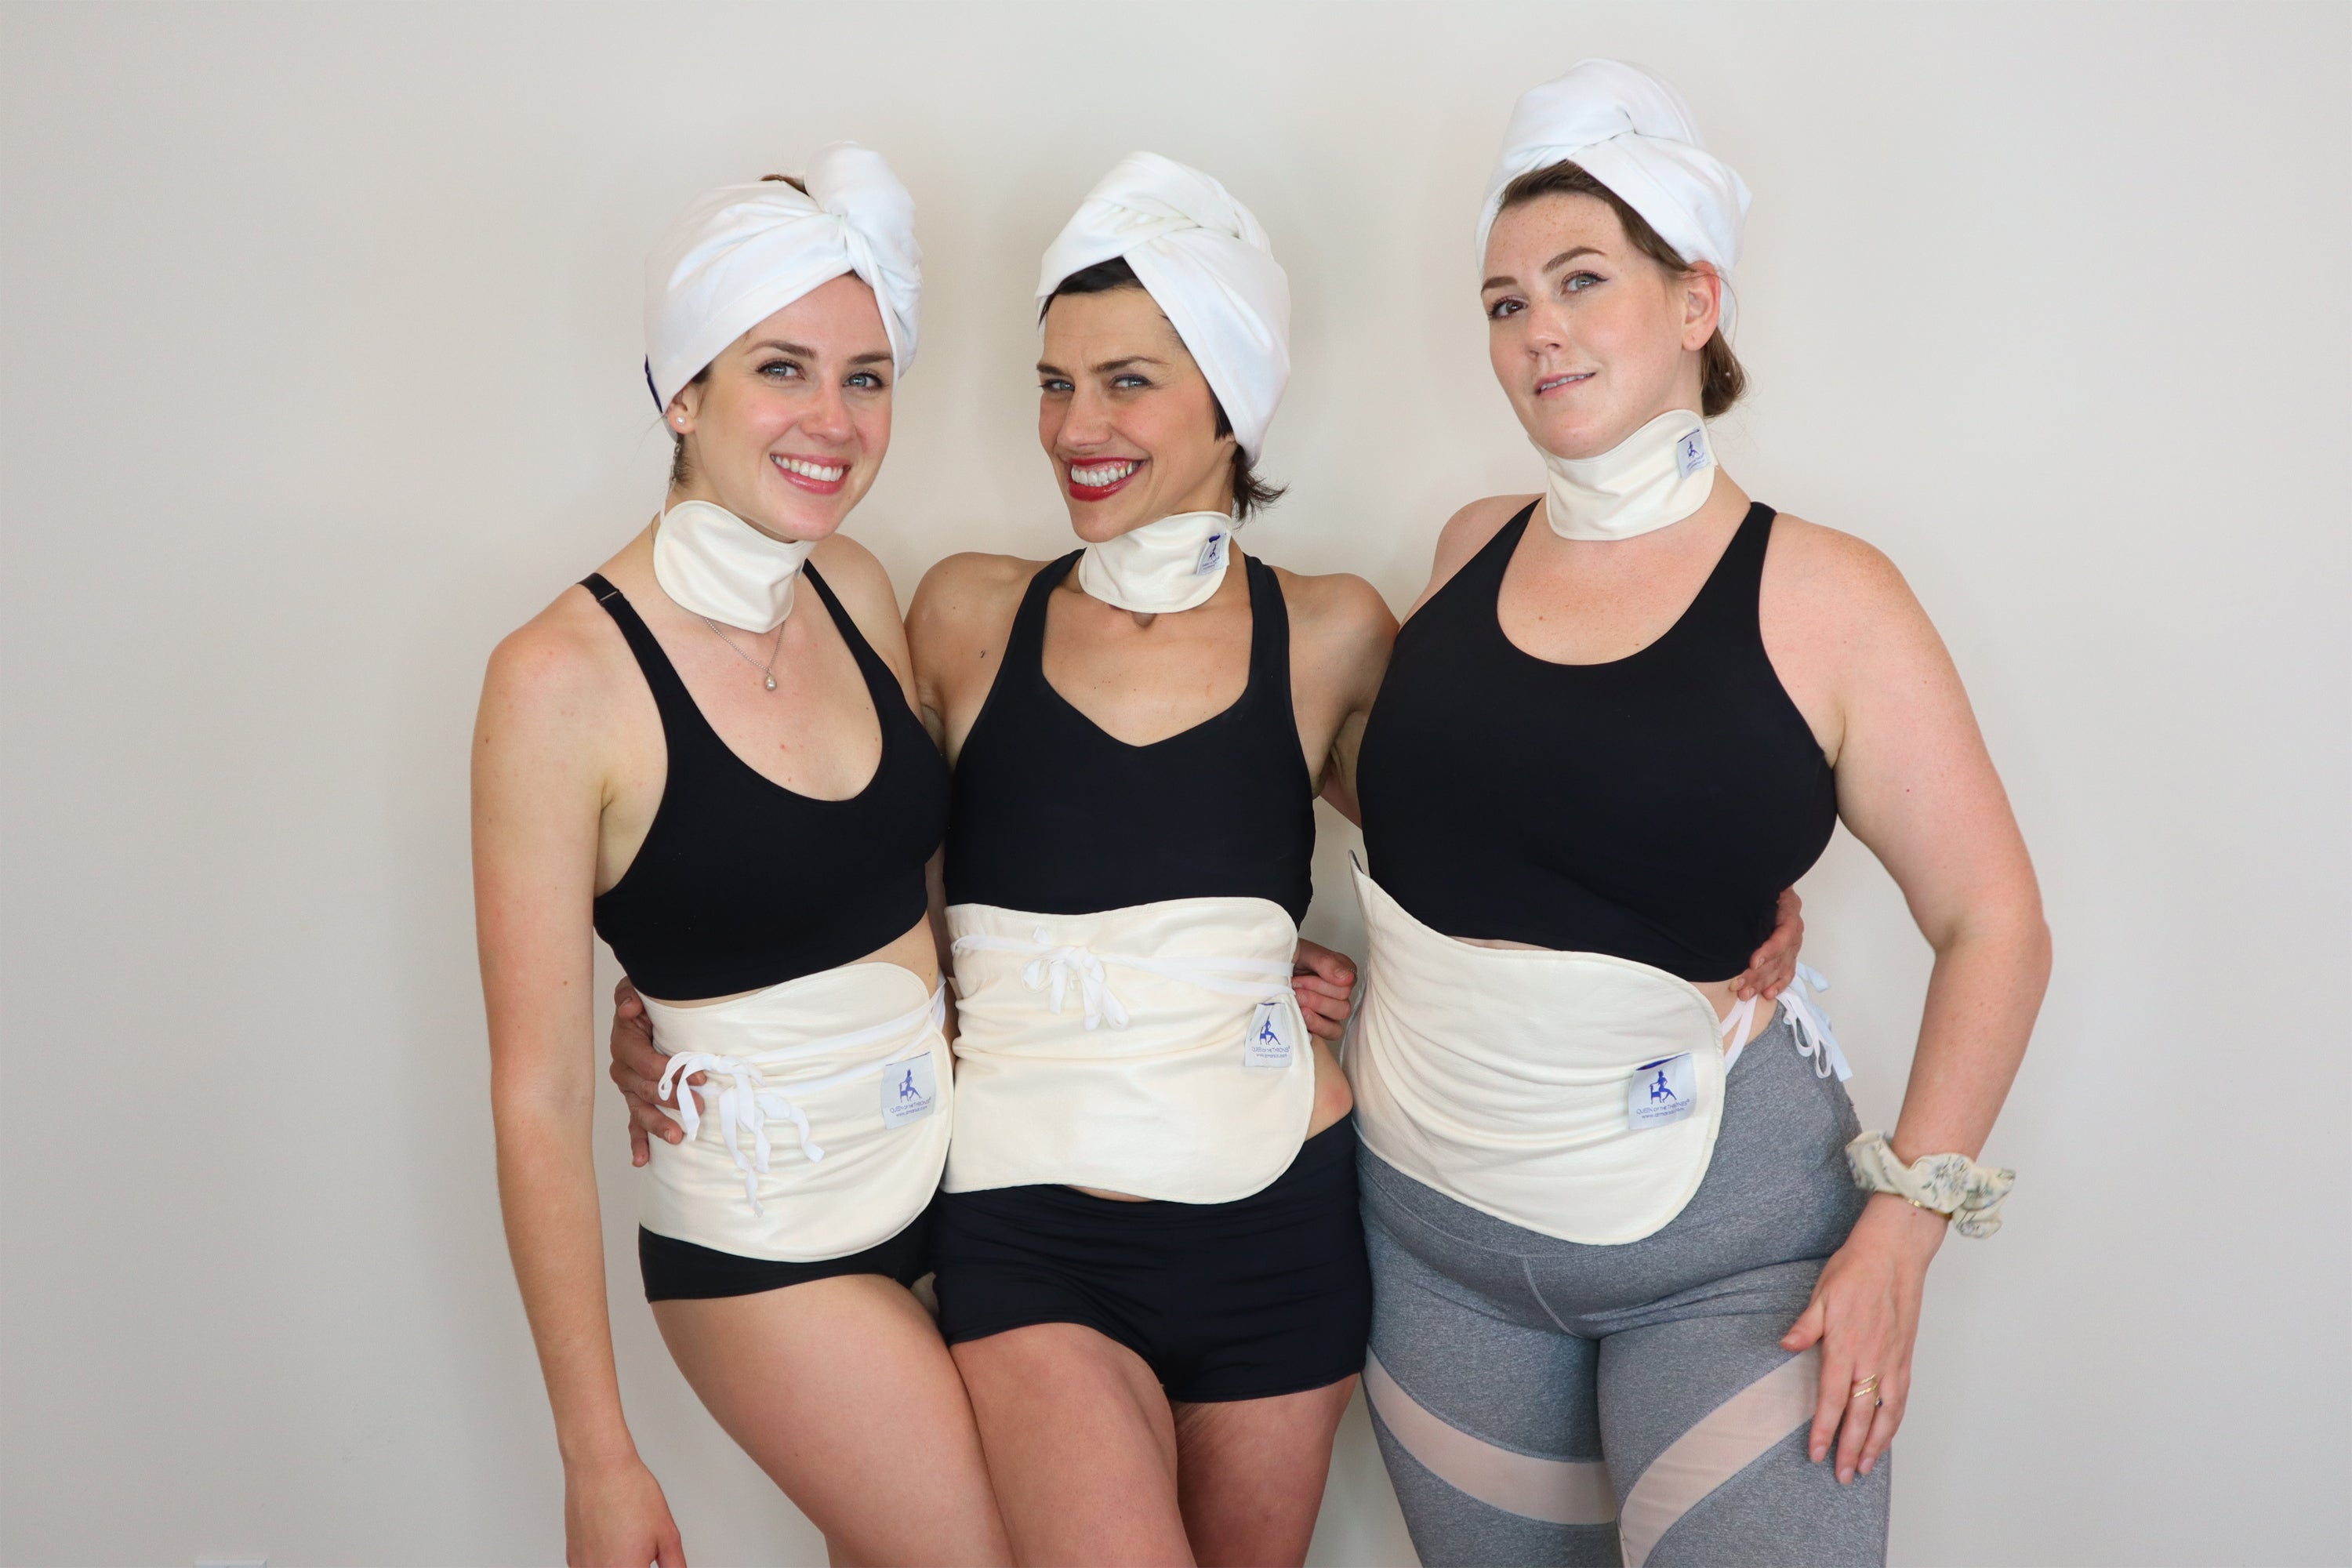 Dr Marisol and two other woman smiling wearing the castor oil packs